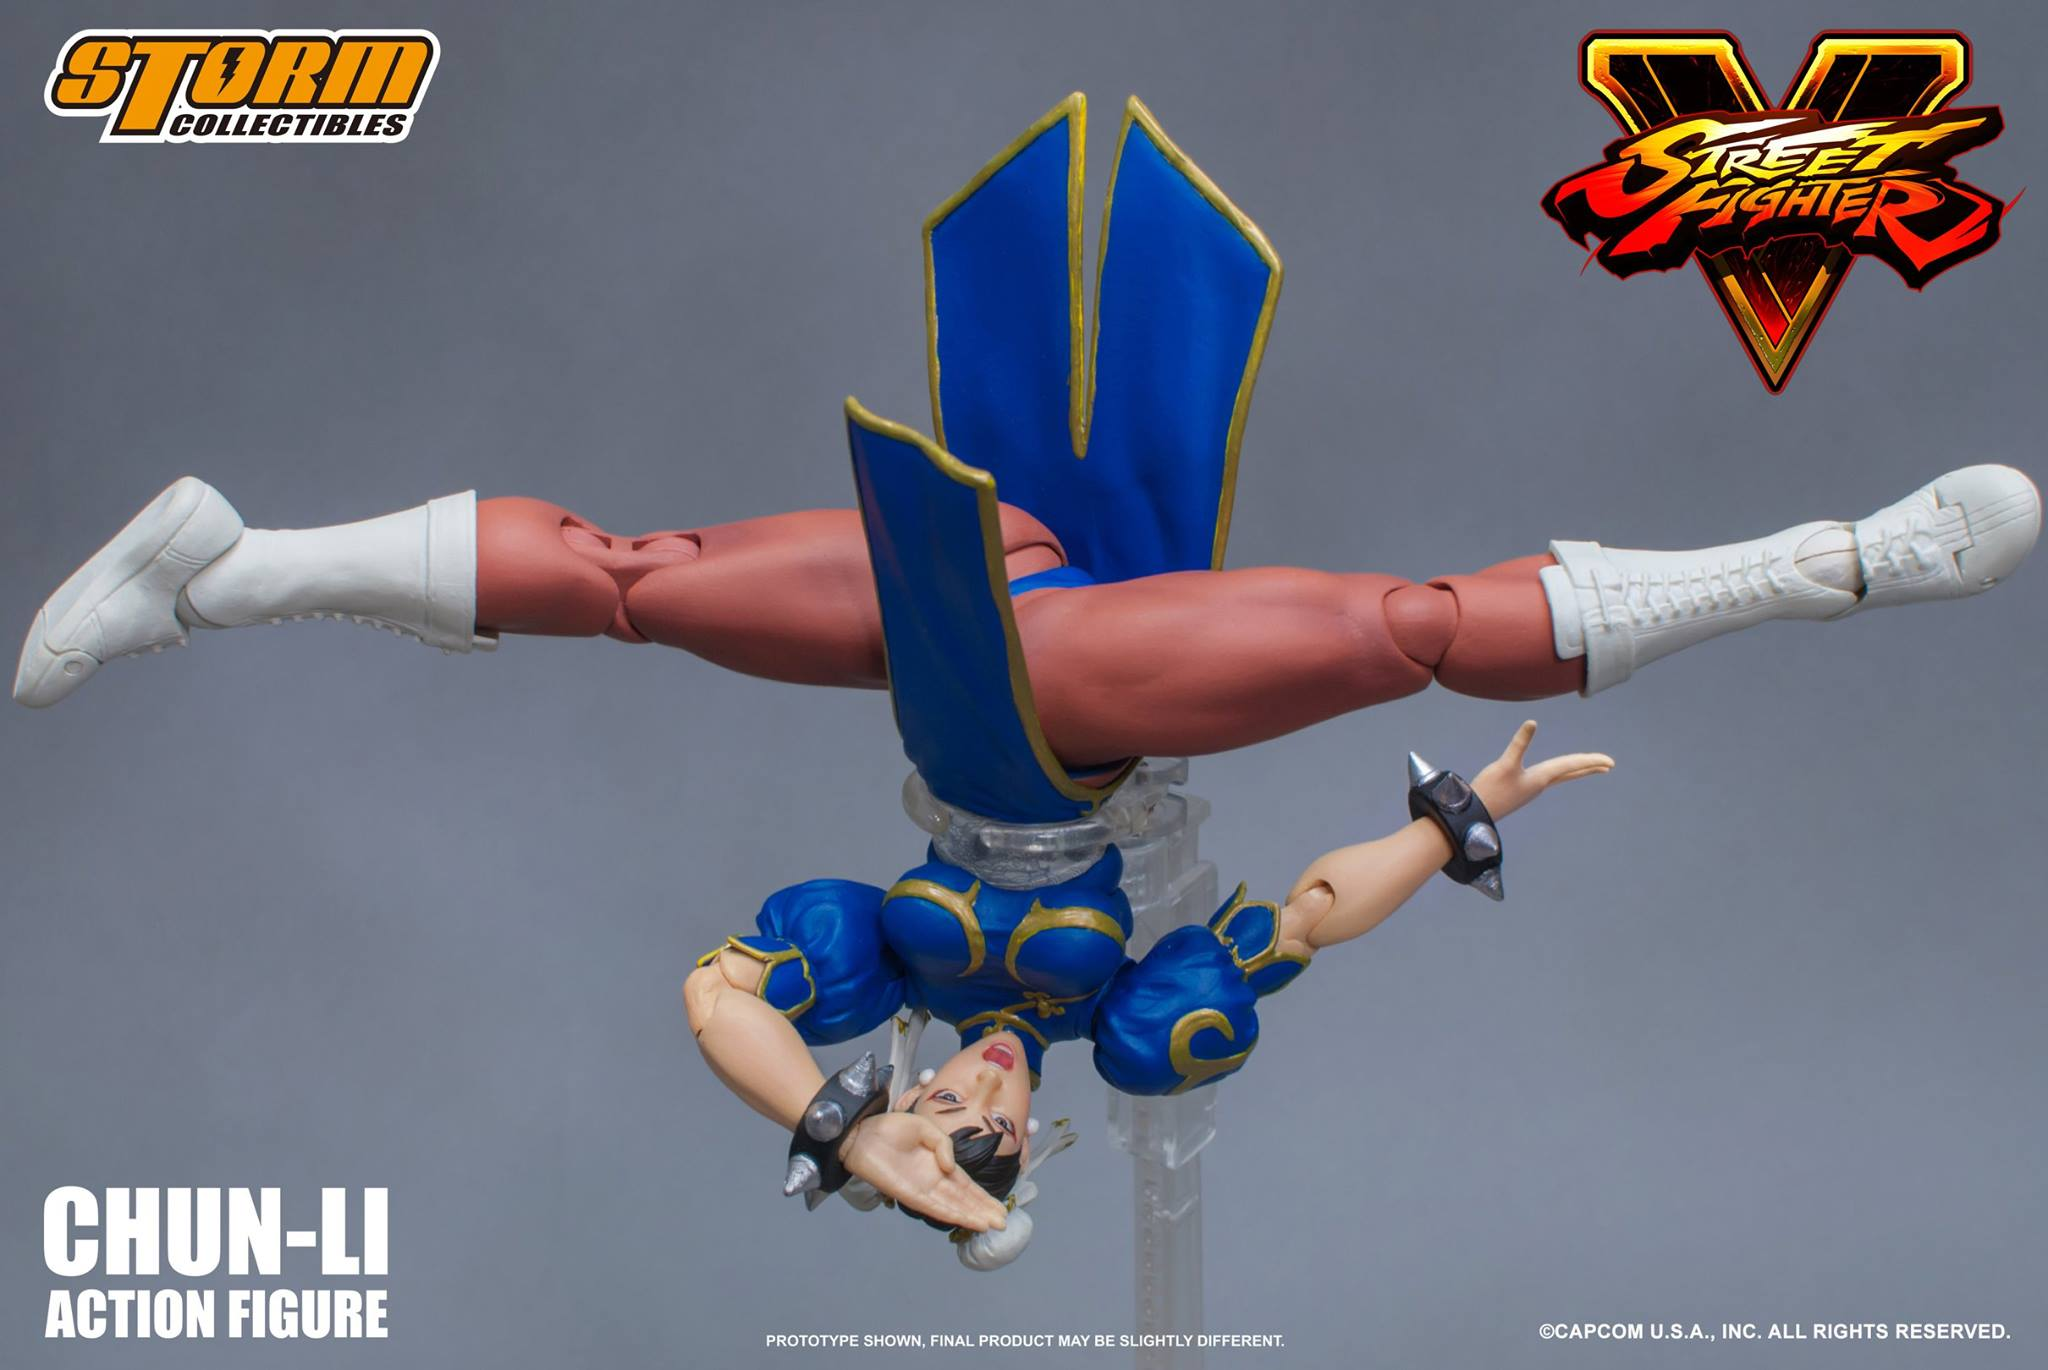 Street Fighter Chun Li Figure By Storm Collectibles